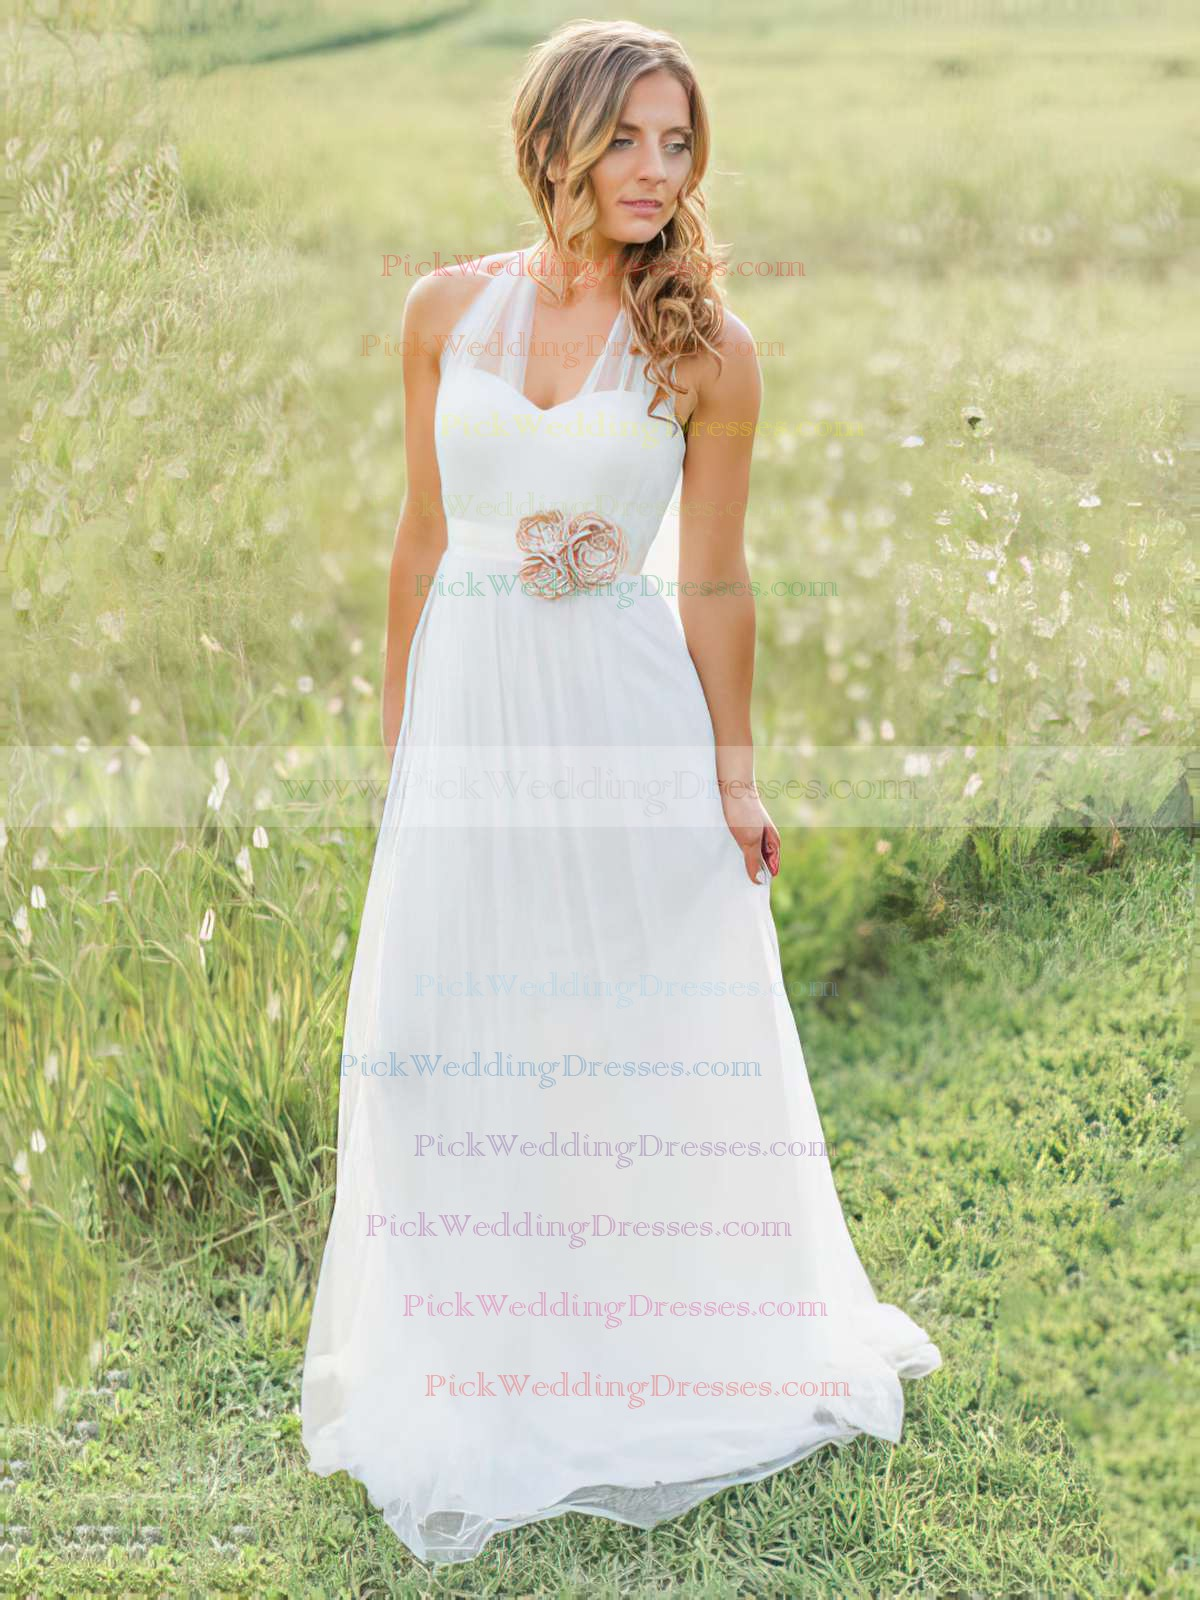 http://www.pickweddingdresses.com/elegant-halter-white-tulle-a-line-sashes-ribbons-sweep-train-amazing-wedding-dress-pwd00021270-p1149.html?utm_source=post&utm_medium=PWD007&utm_campaign=blog